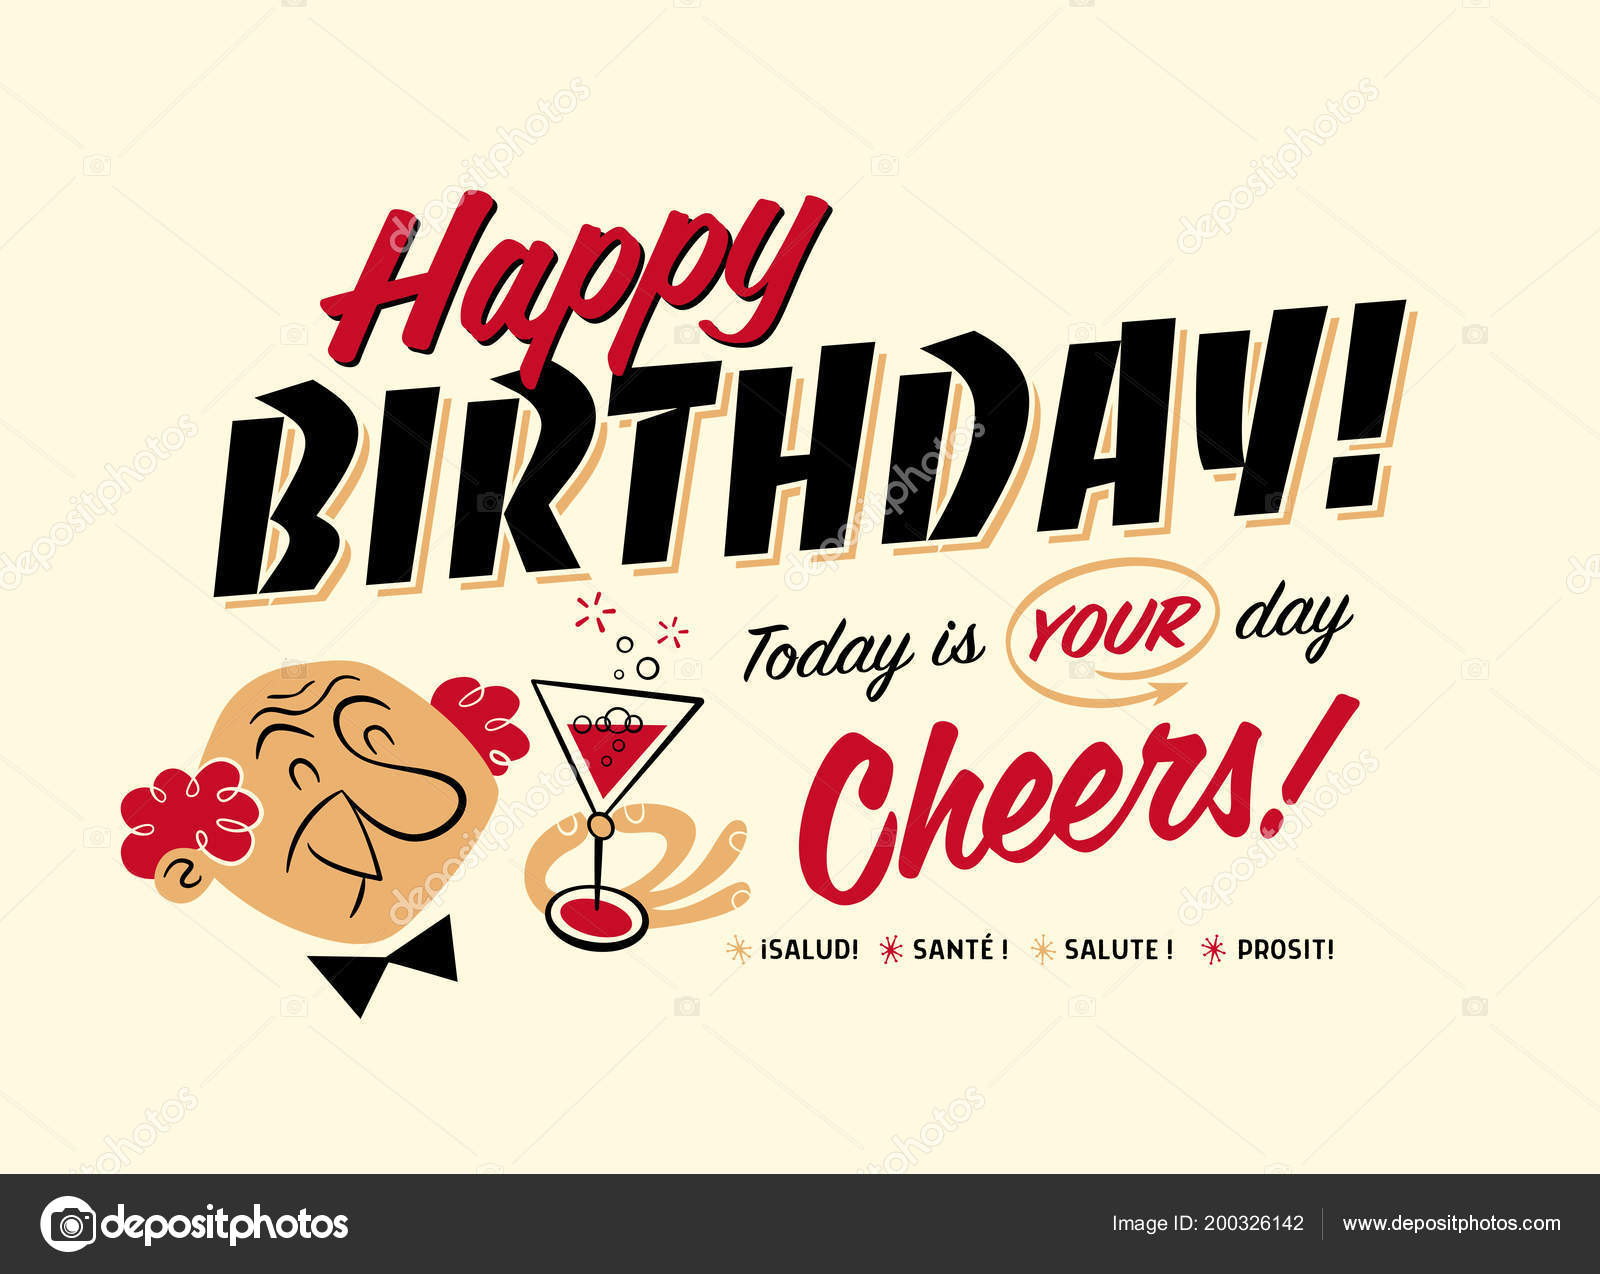 Vintage Style Happy Birthday Postcard Today Your Day Cheers